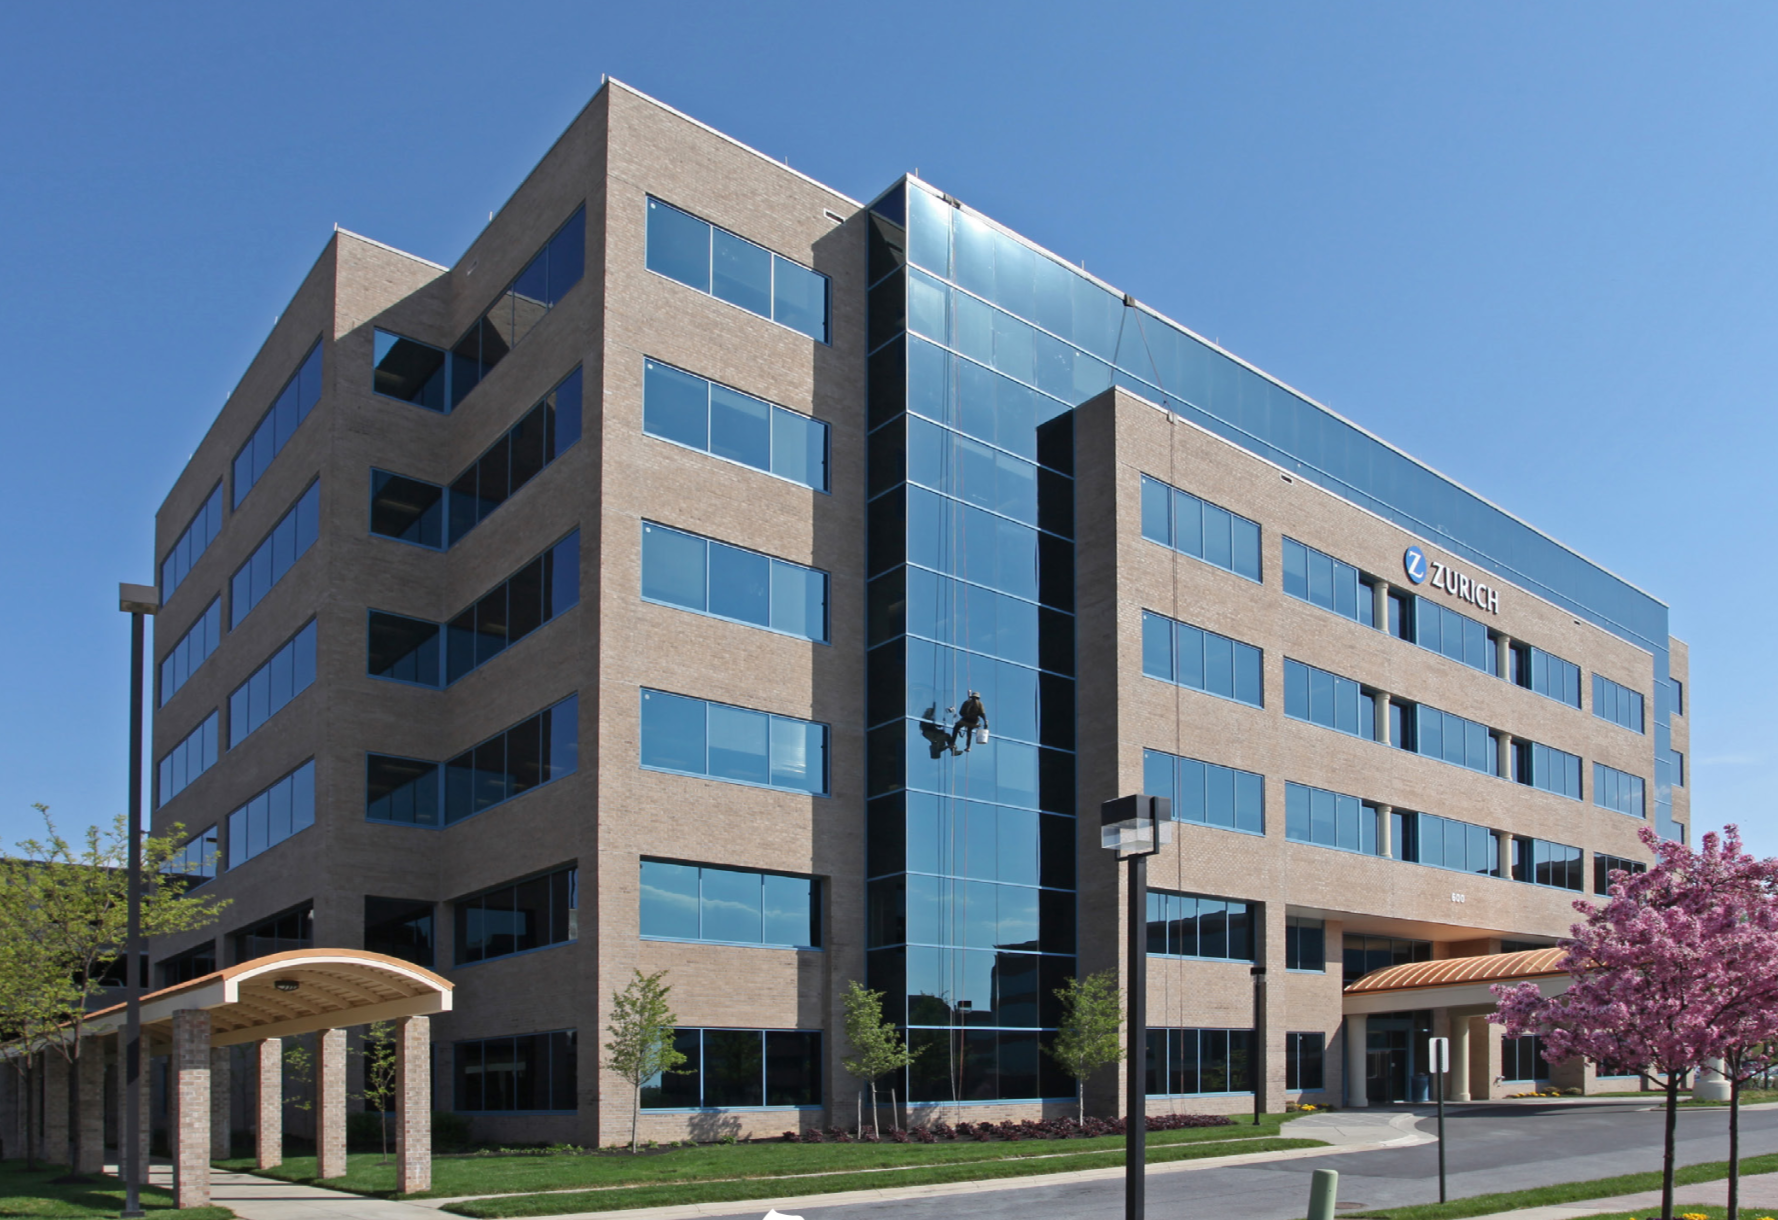 600 Red Brook Blvd Sublease - Class A Office Space Sublease